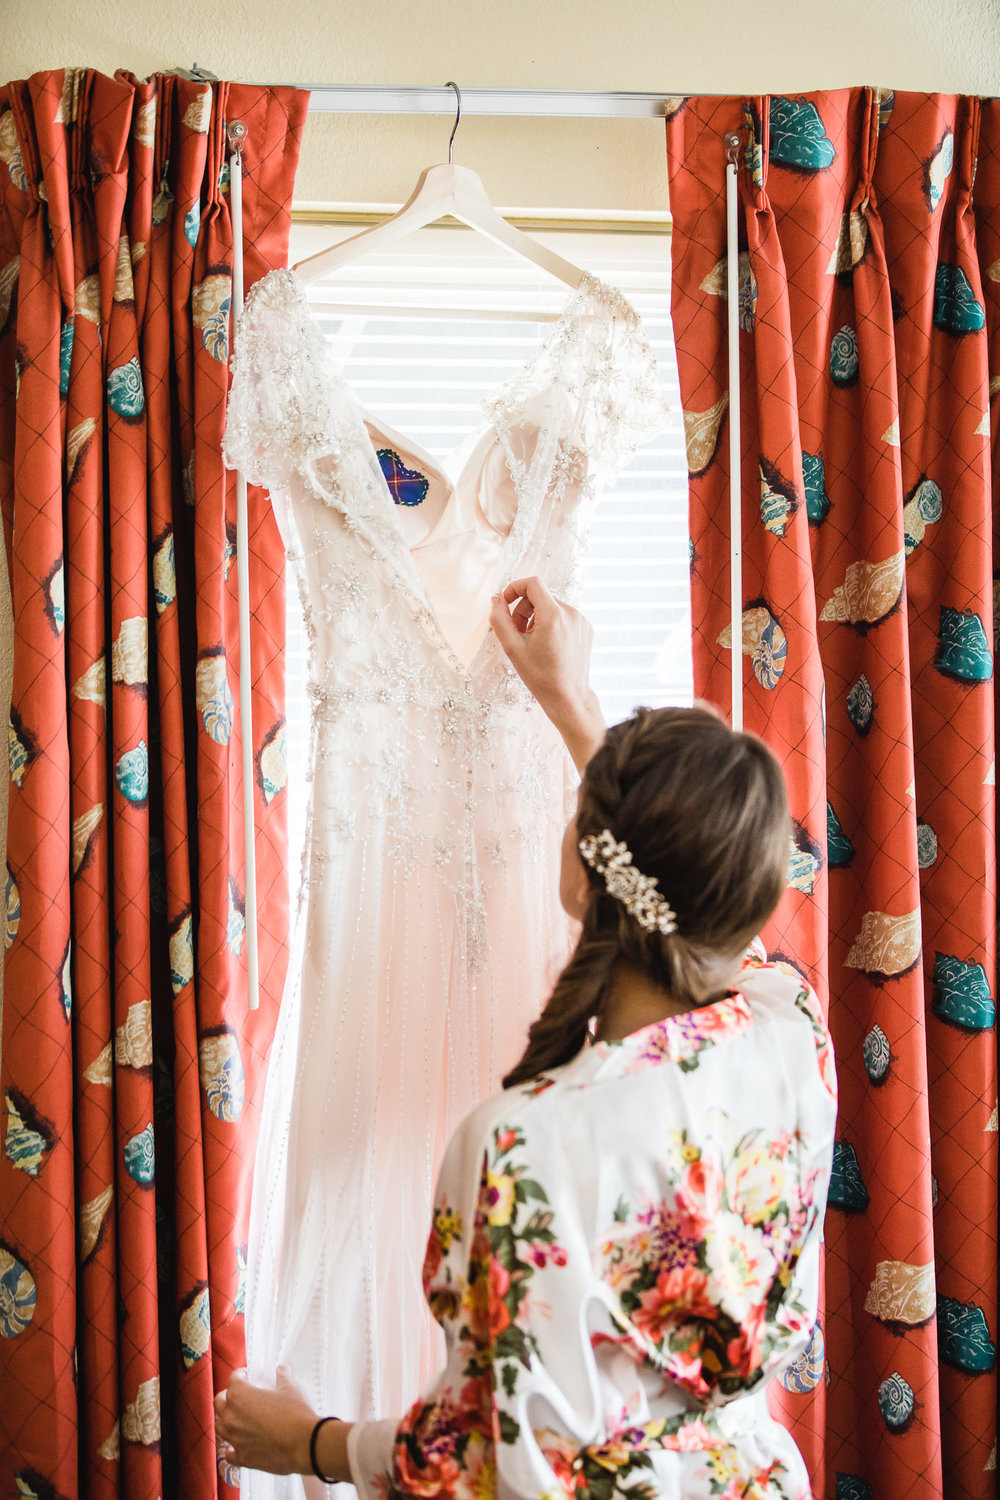 Wedding photograph of a bride looking at her dress at the Hollander Hotel in St. Petersburg, Florida